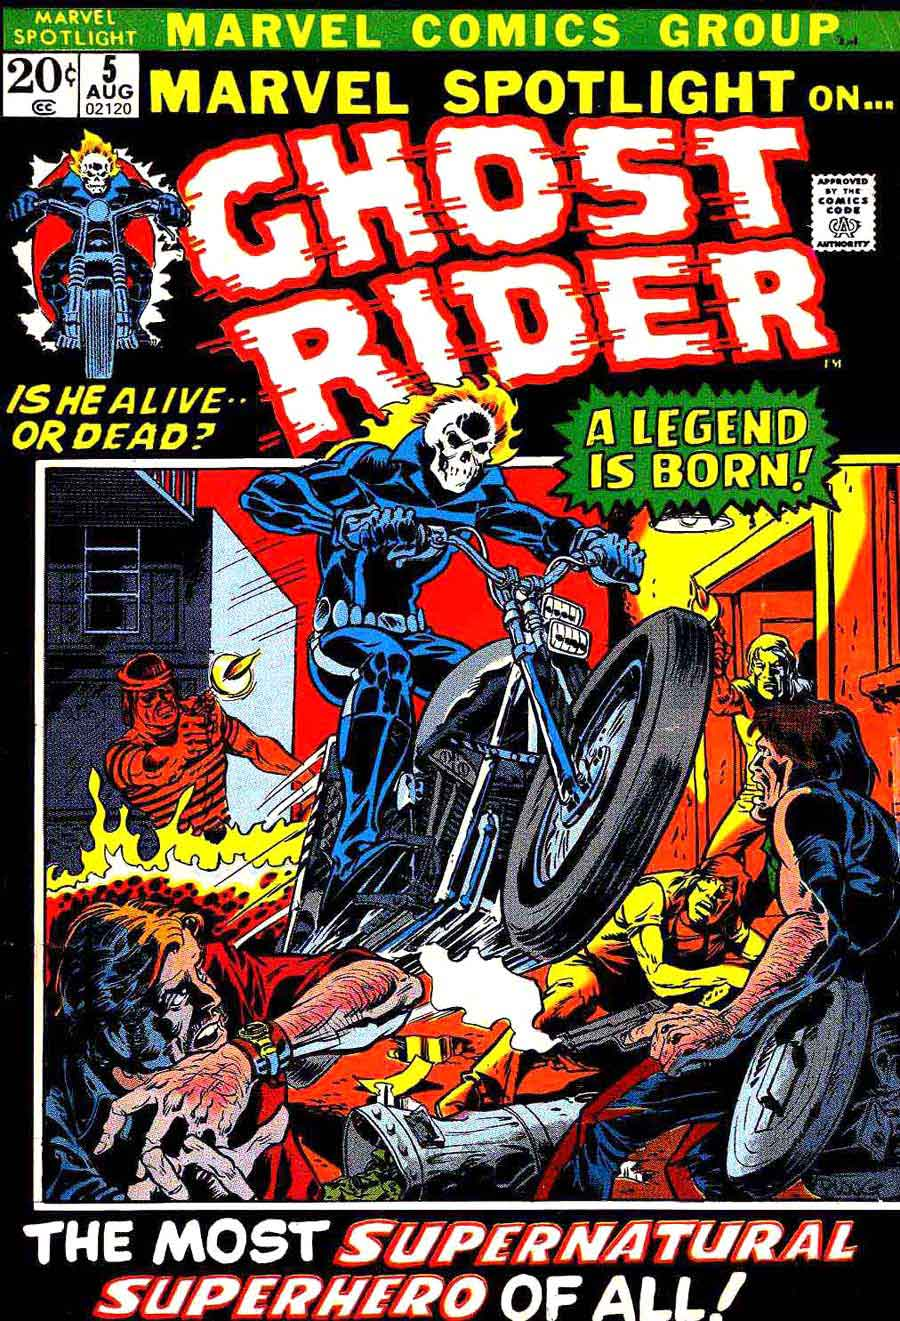 Marvel Spotlight v1 #5 Ghost Rider marvel comic book cover art by Mike Ploog